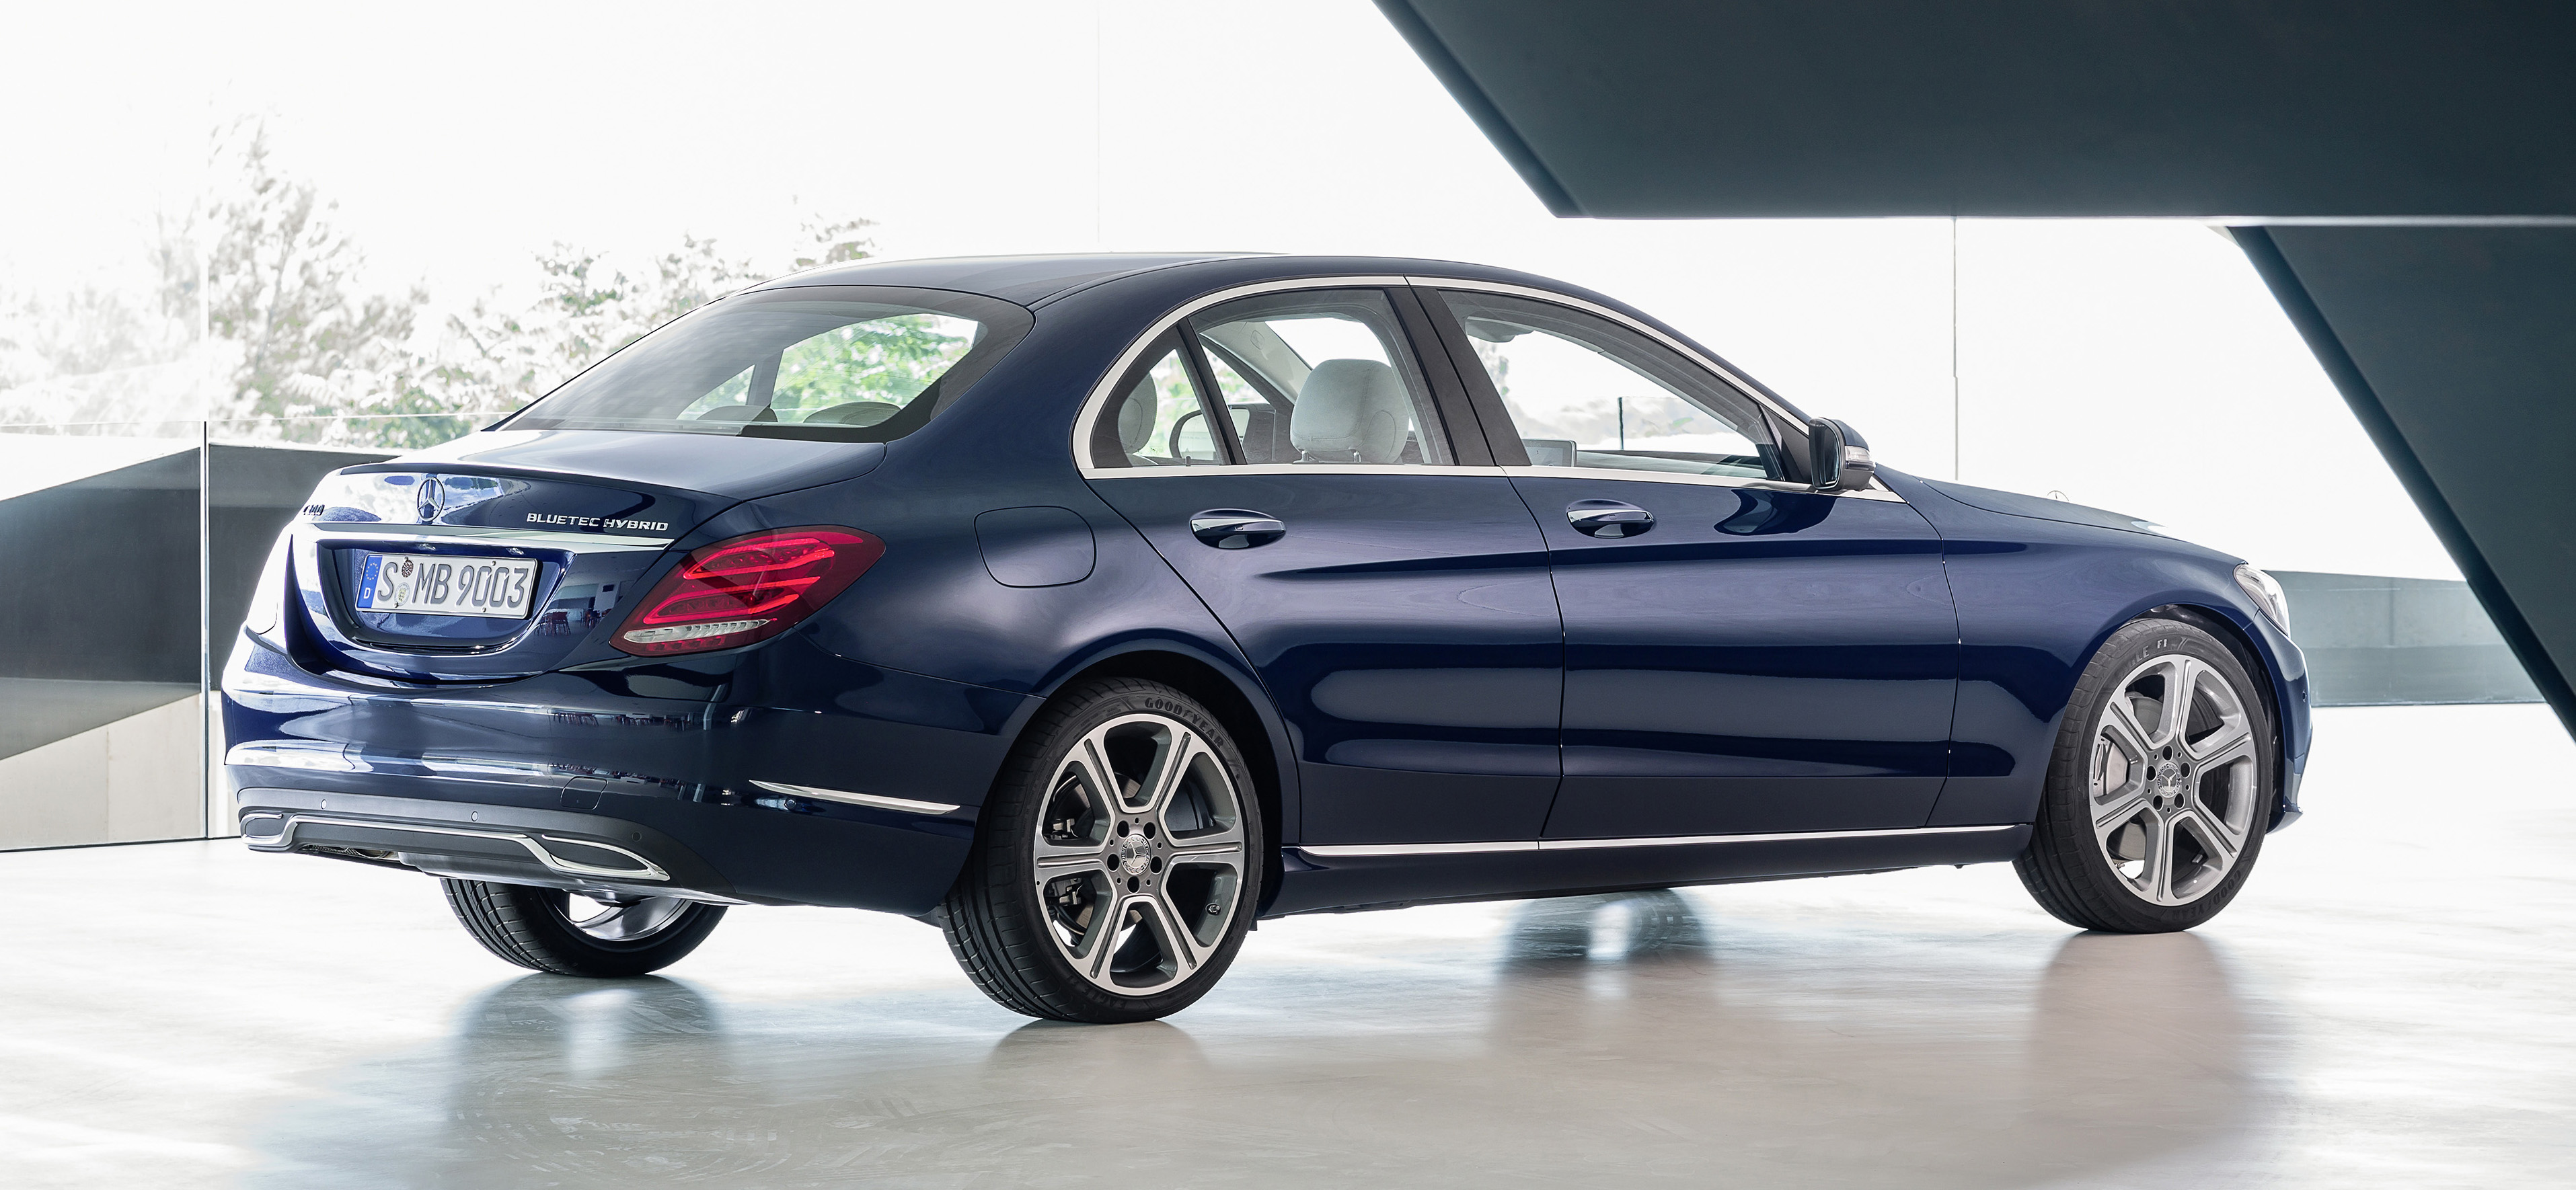 W205 Mercedes Benz C Class First Details Released Image